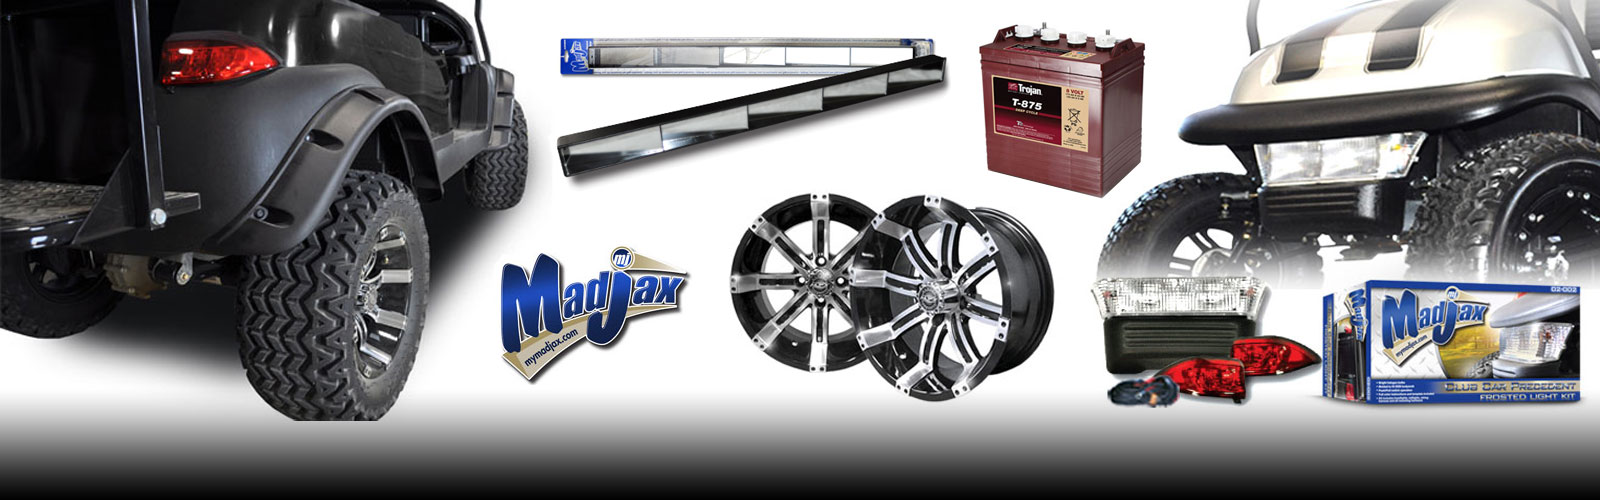 Brad's Golf Cars carries a large assortment of golf cart parts and accessories for most year model golf cars.